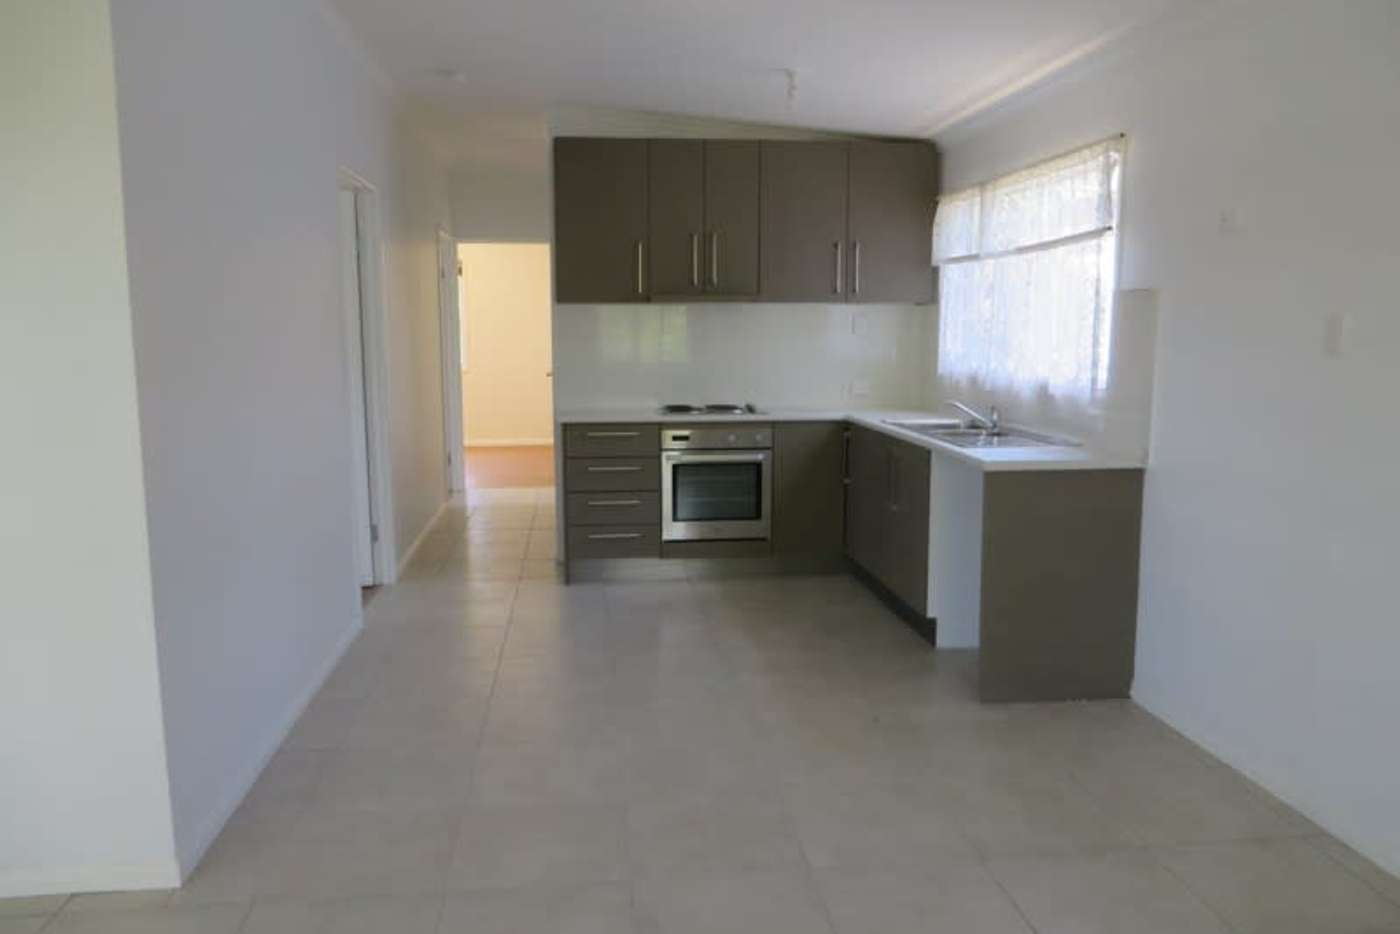 Sixth view of Homely house listing, 40 Summer Street, Deception Bay QLD 4508